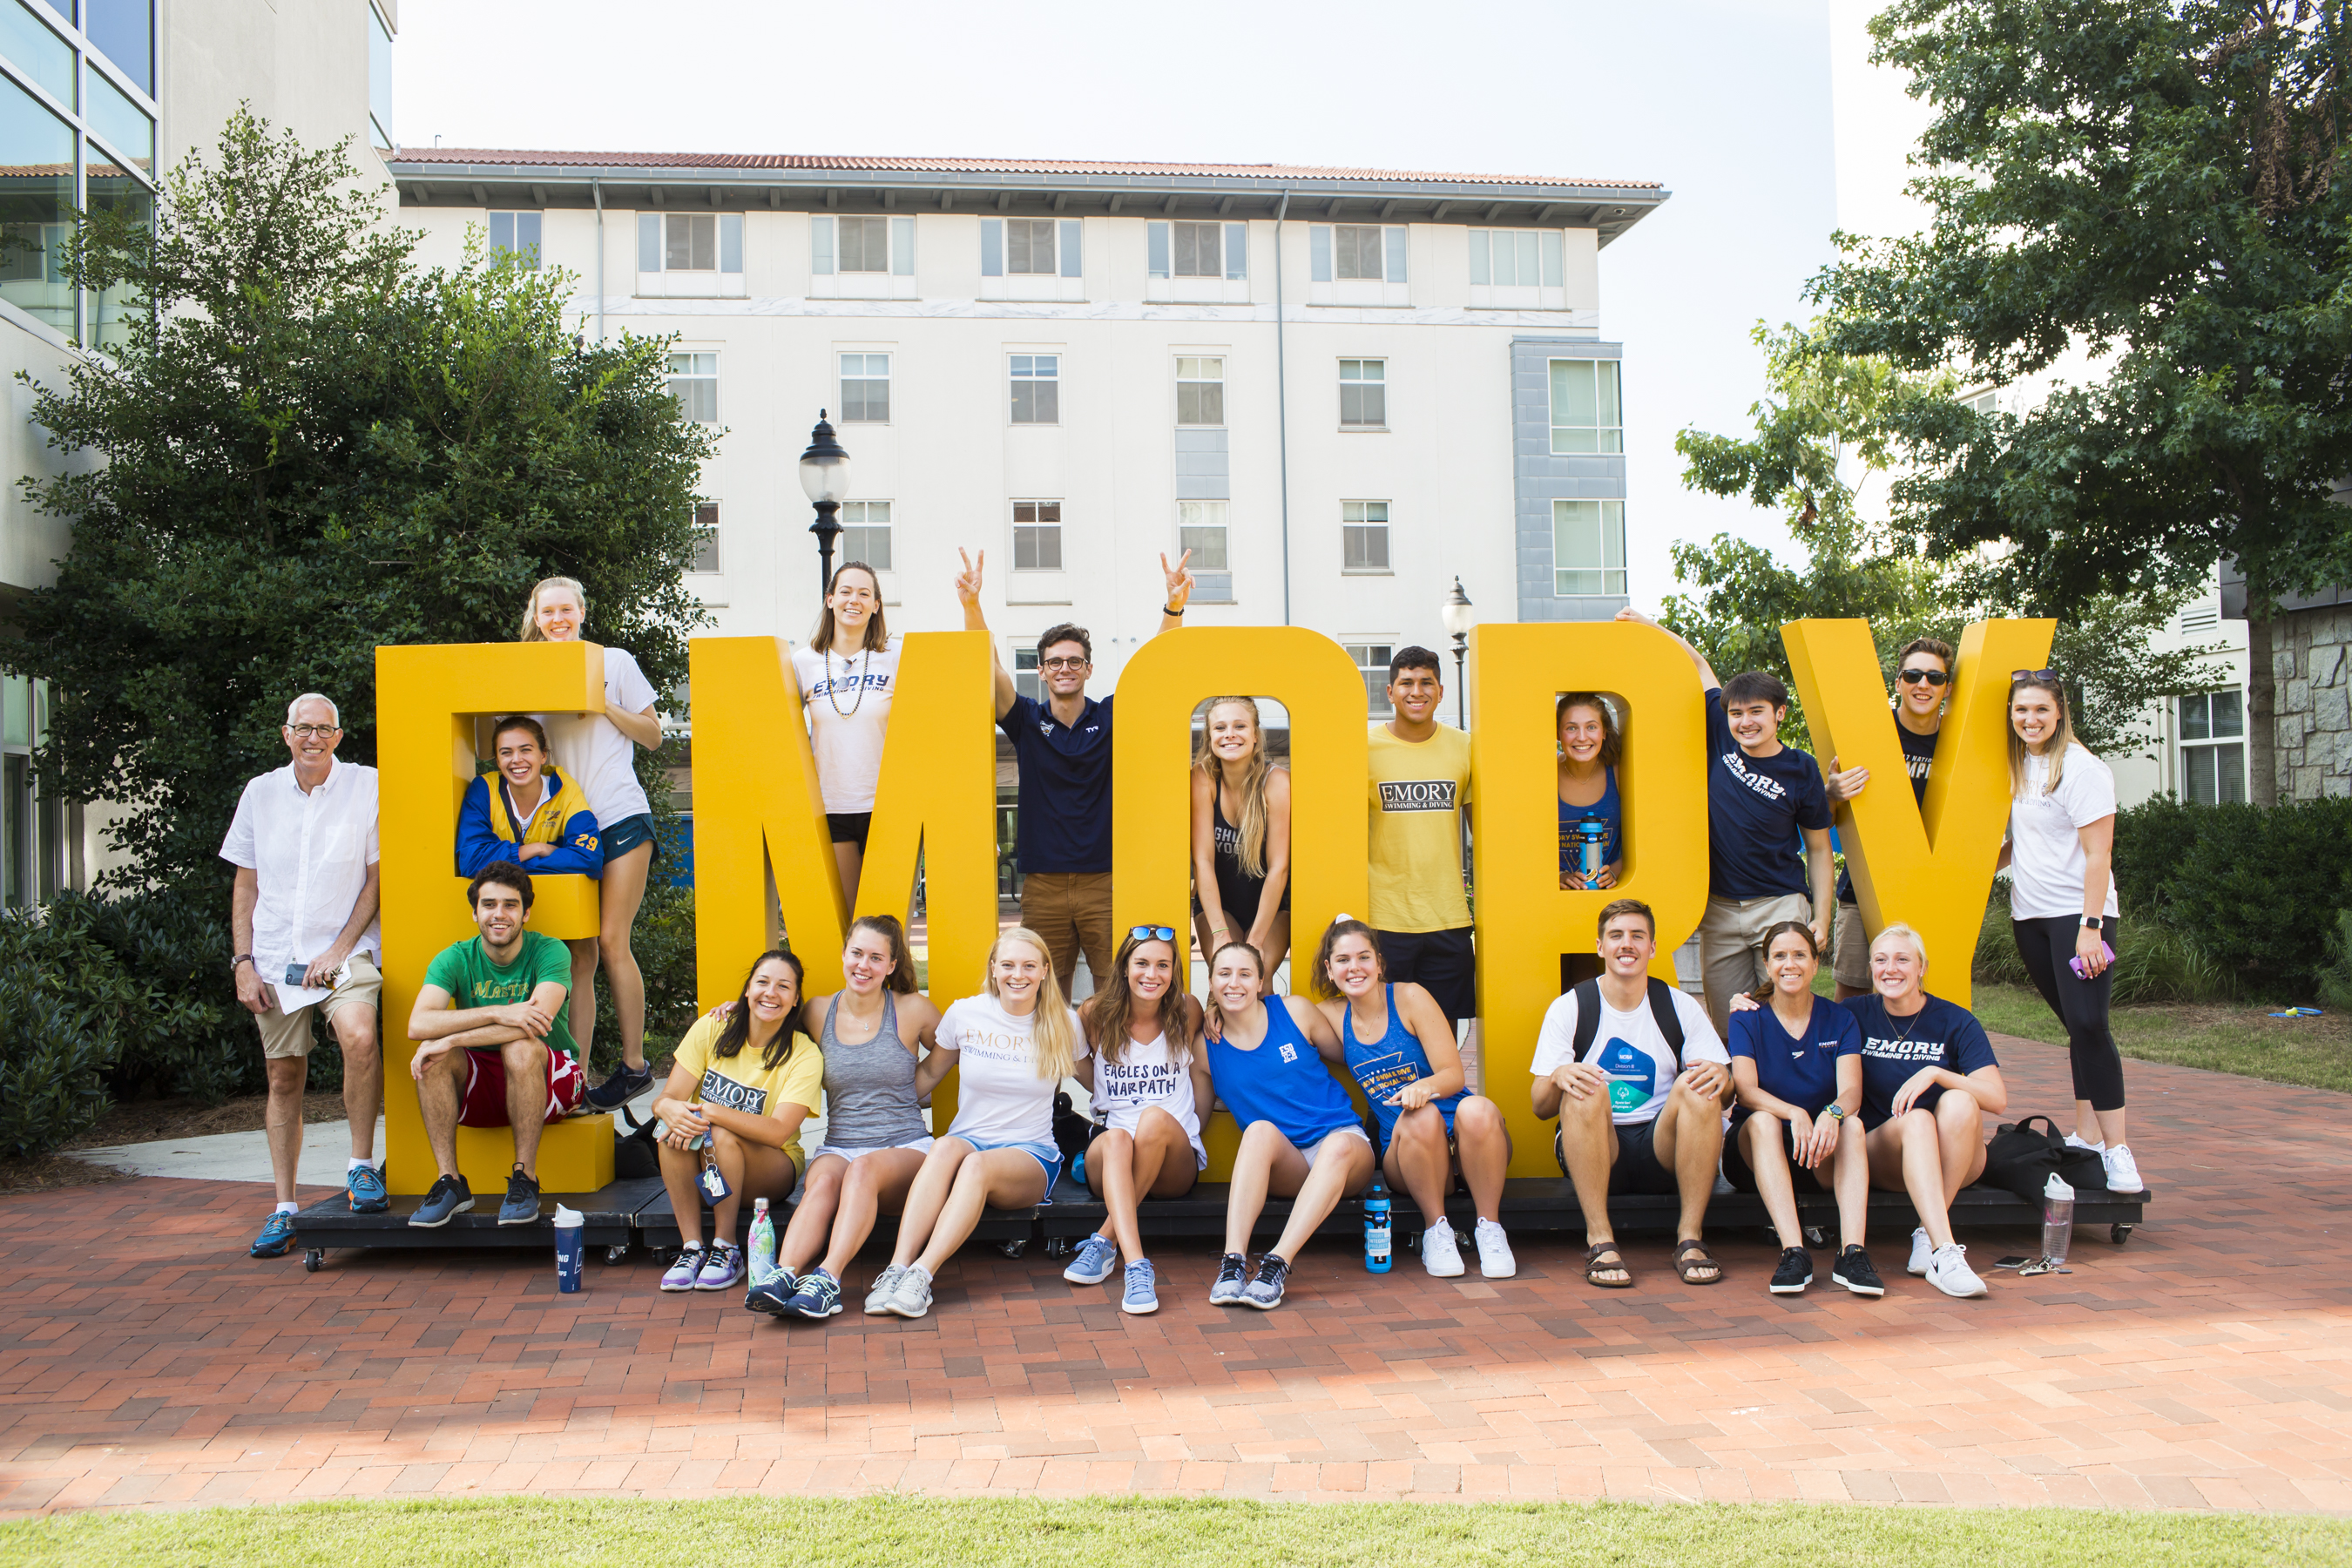 Several students and parents pose around a sculpture that says the word Emory